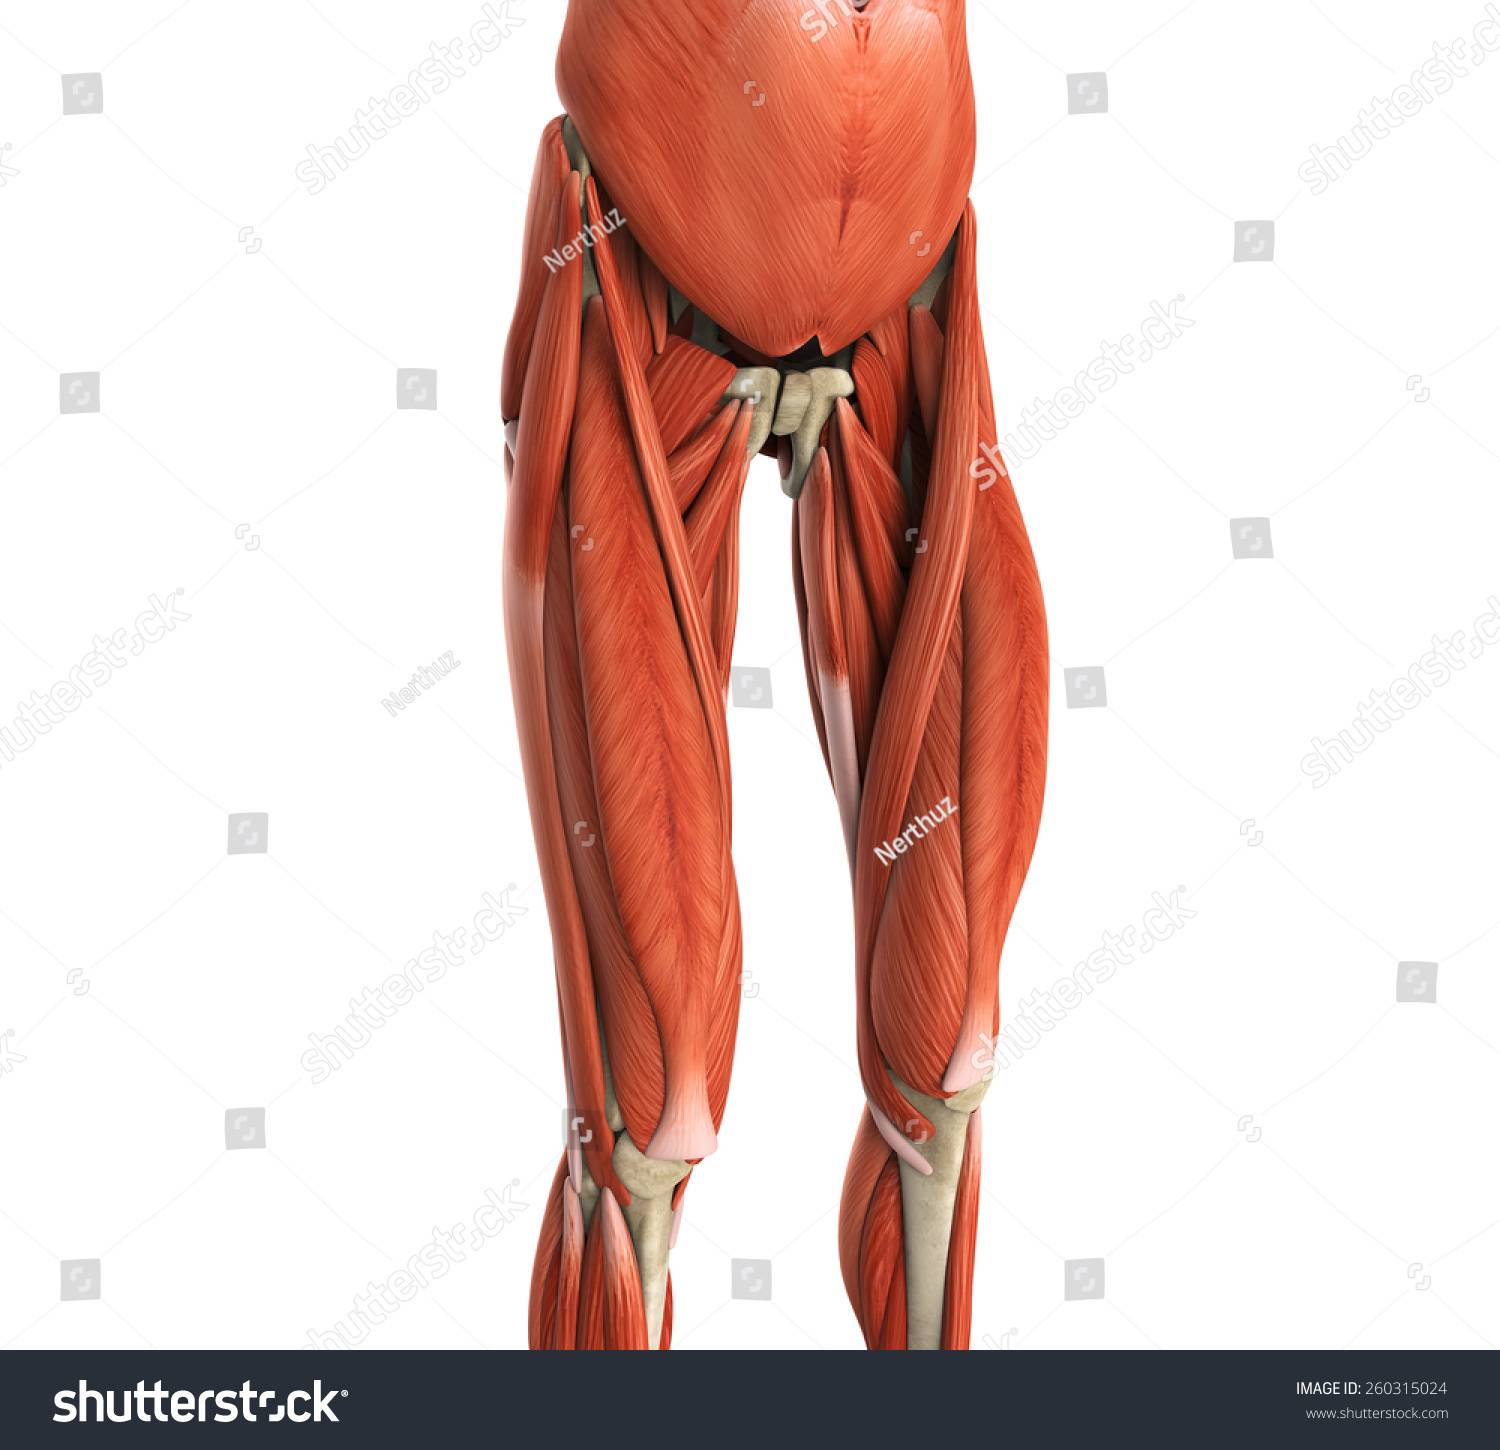 Royalty Free Stock Illustration Of Upper Legs Muscles Anatomy Stock